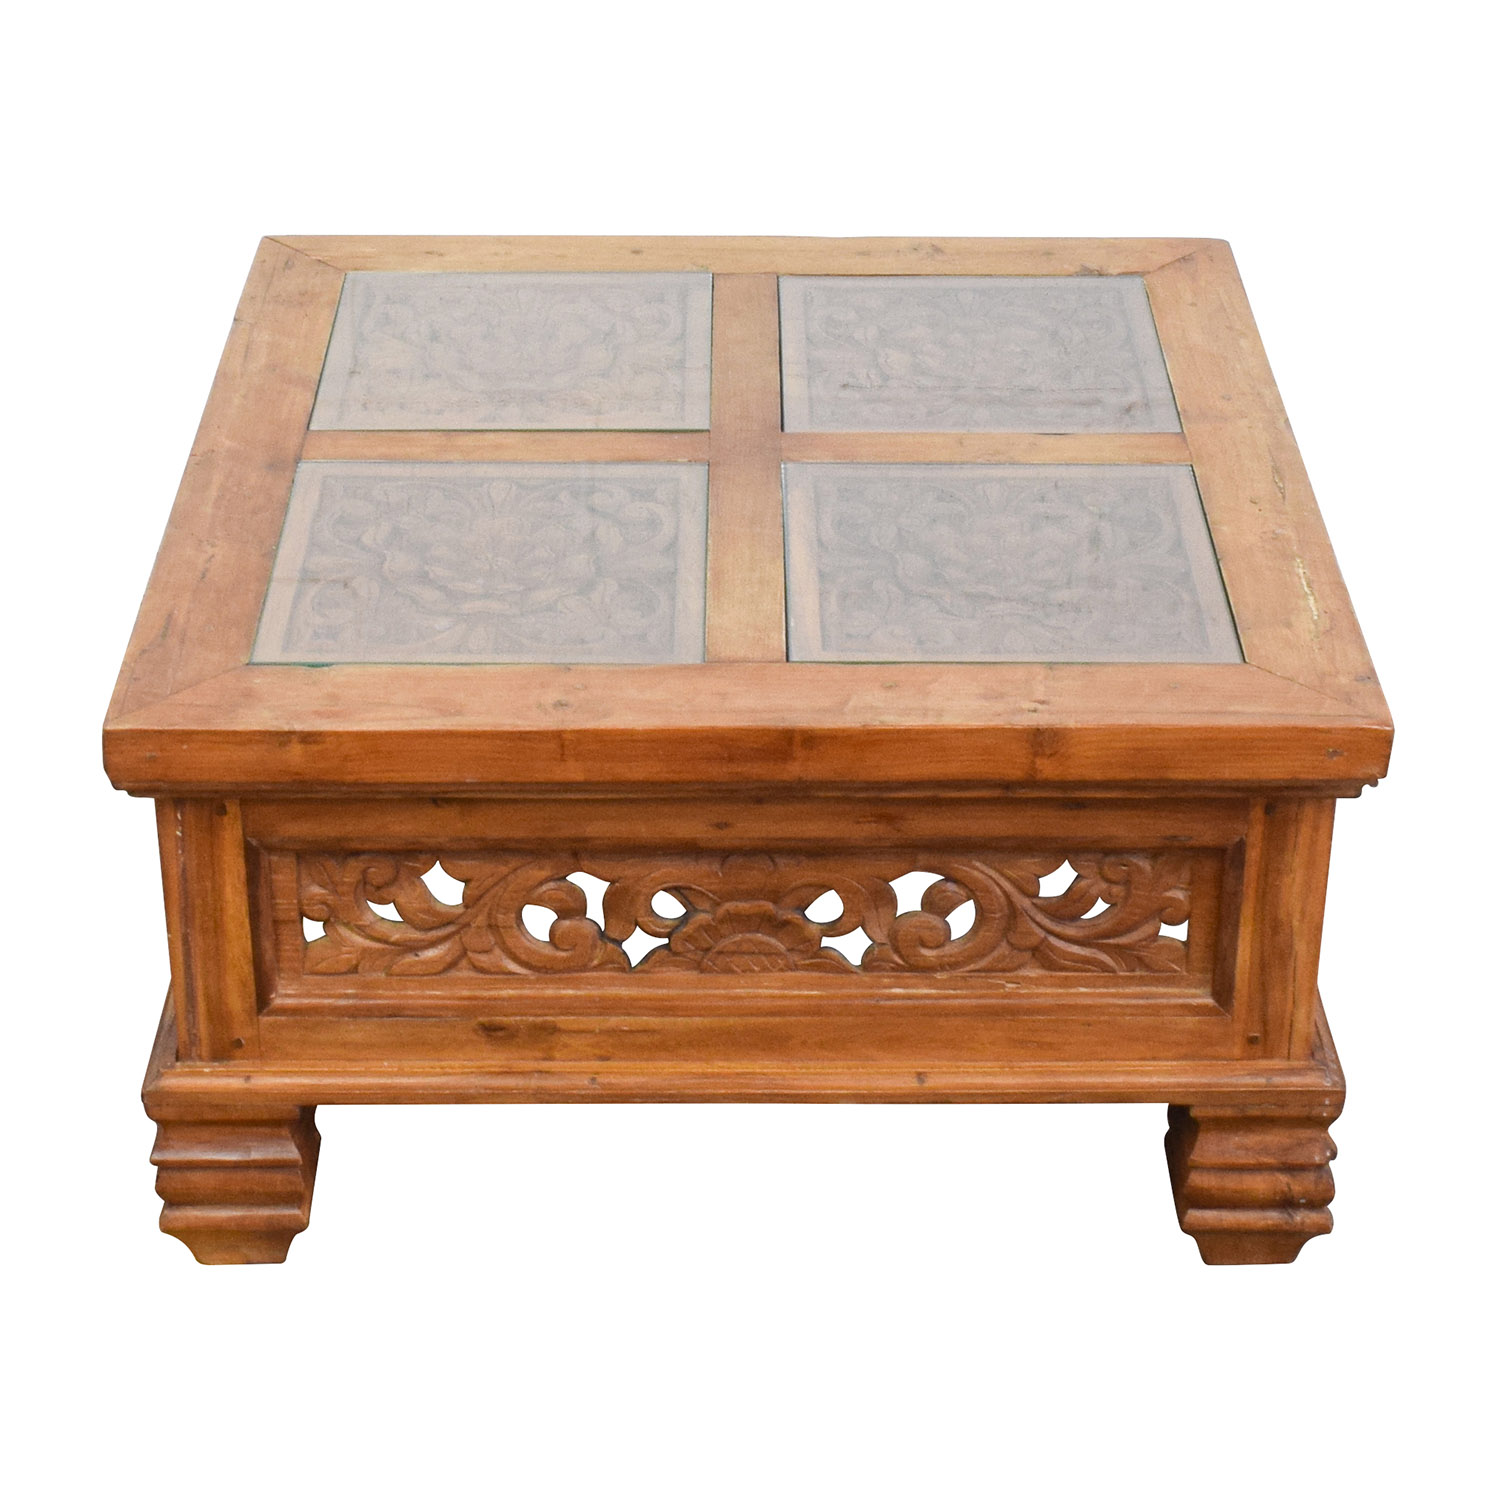 77 off teak carved coffee table with glass top tables Wood coffee table glass top